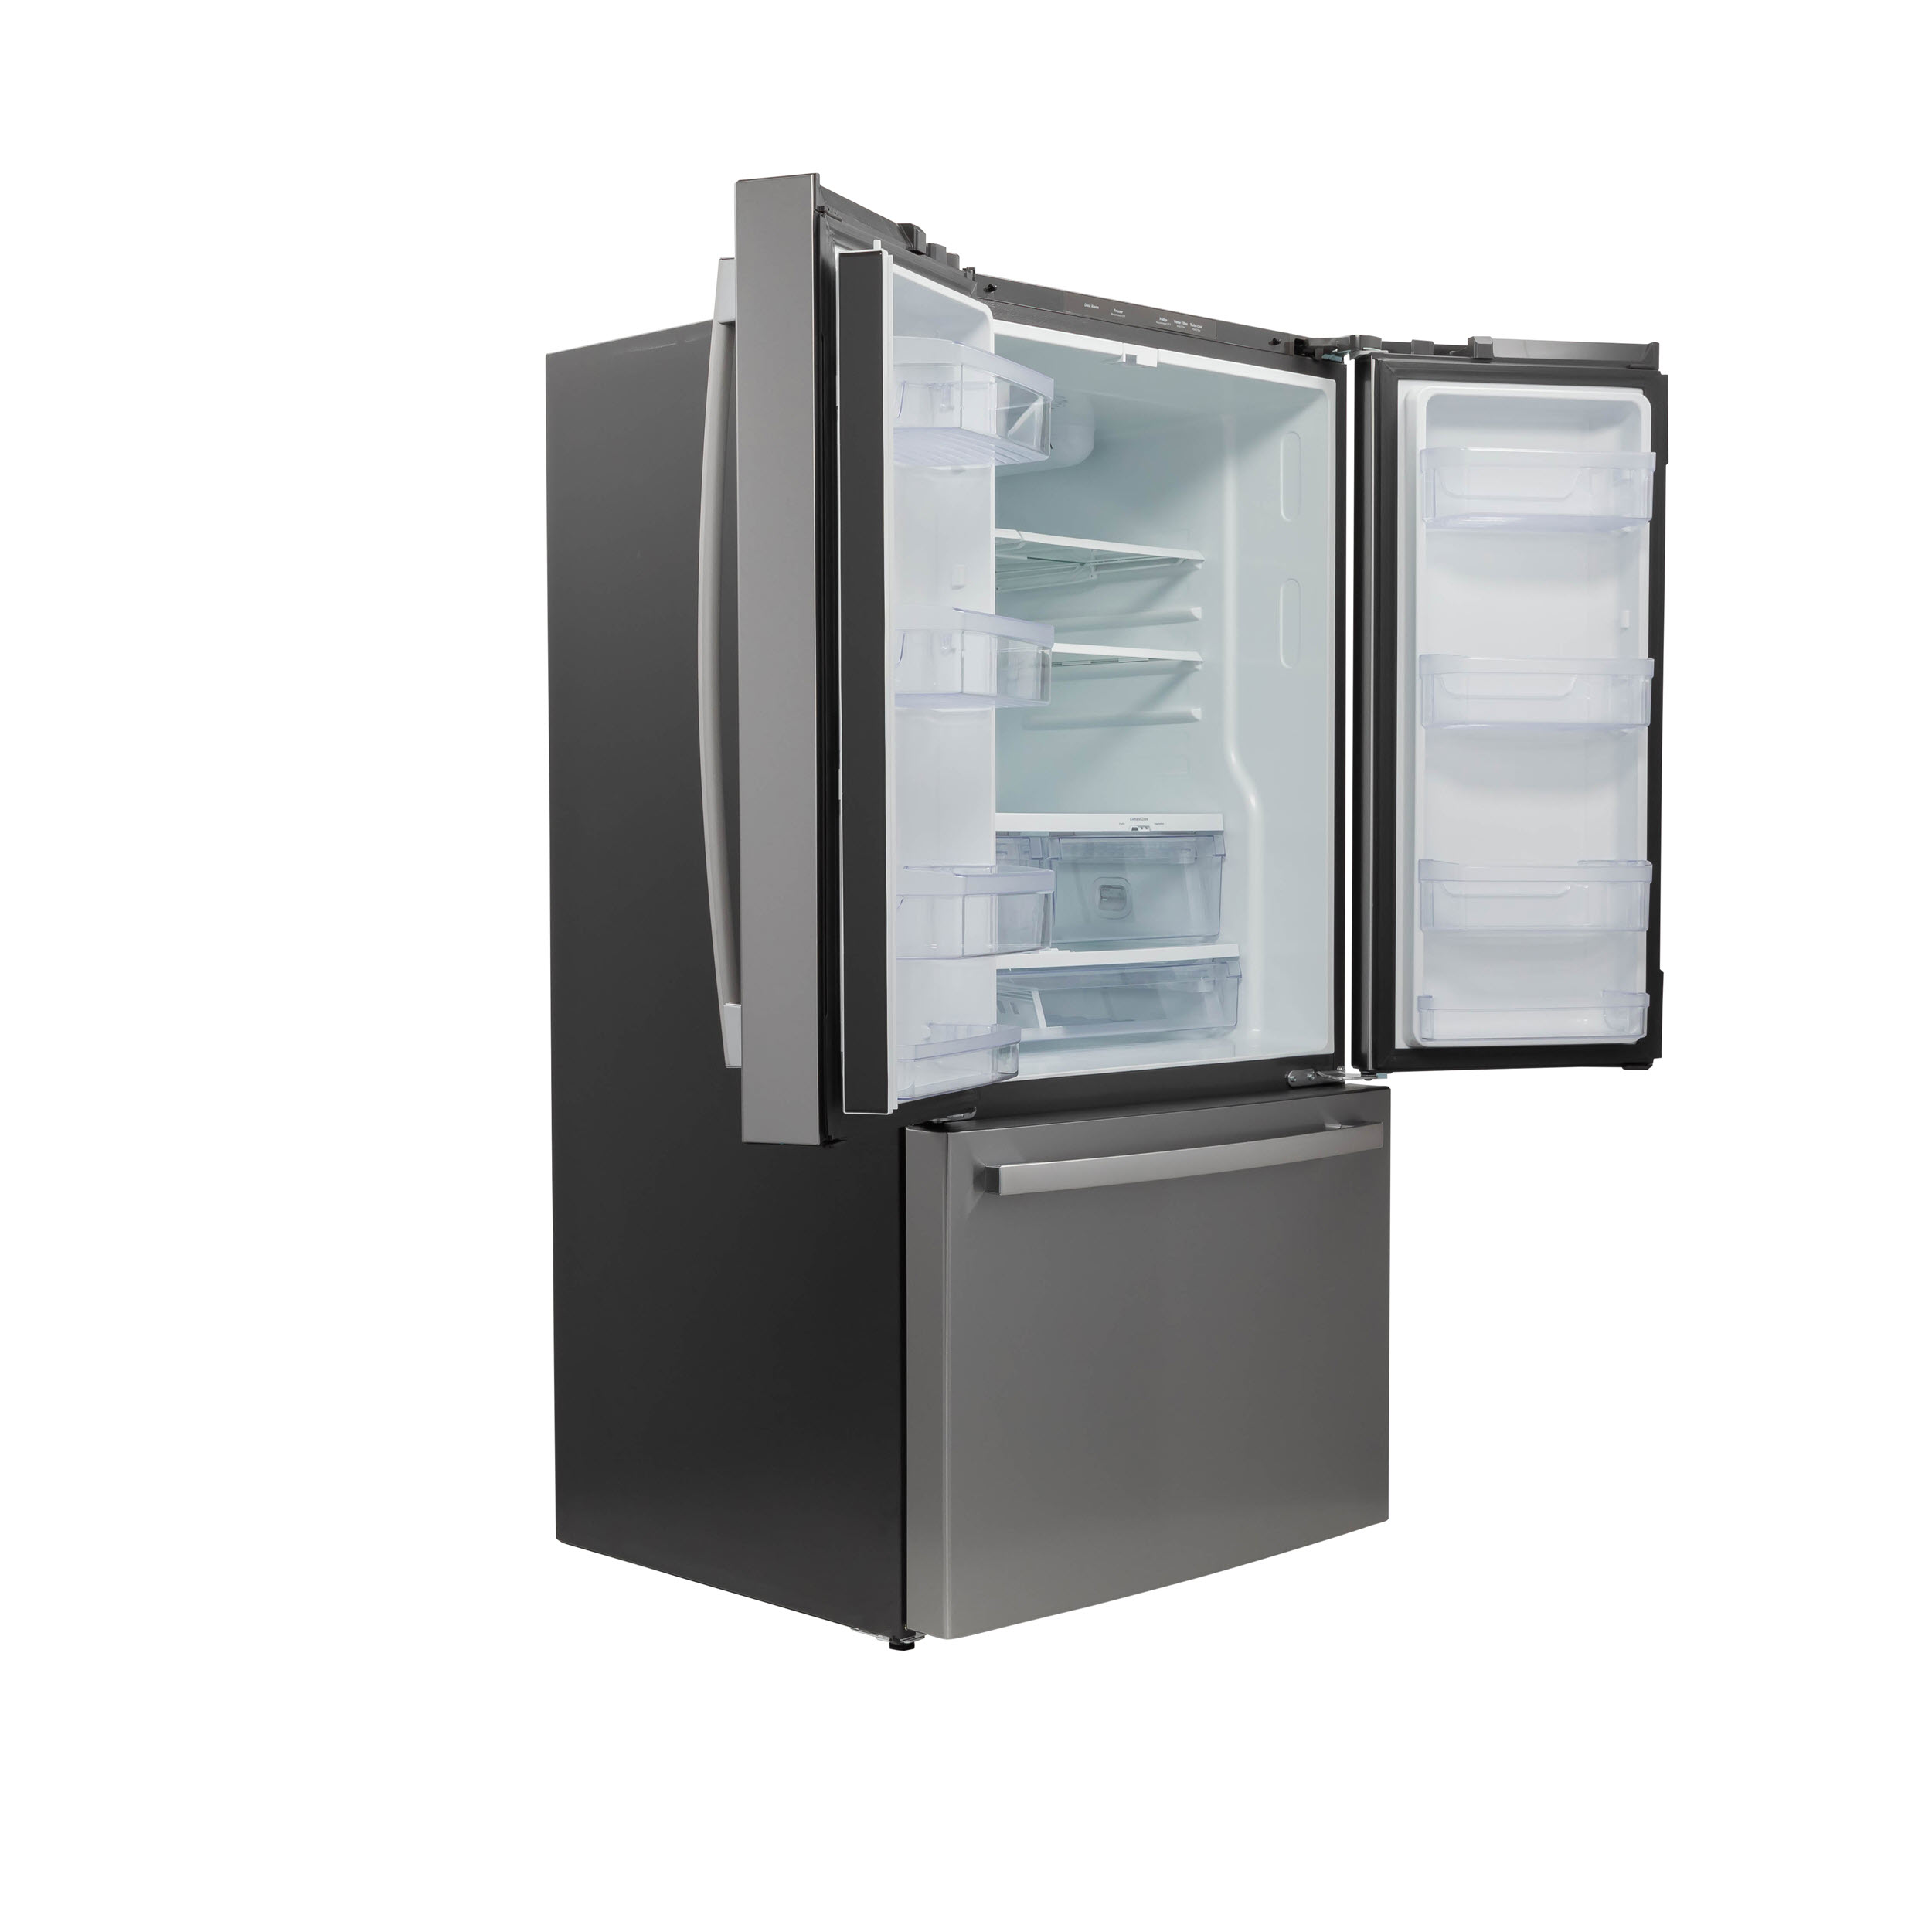 Model: GNE27JYMFS | GE GE® ENERGY STAR® 27.0 Cu. Ft. Fingerprint Resistant French-Door Refrigerator